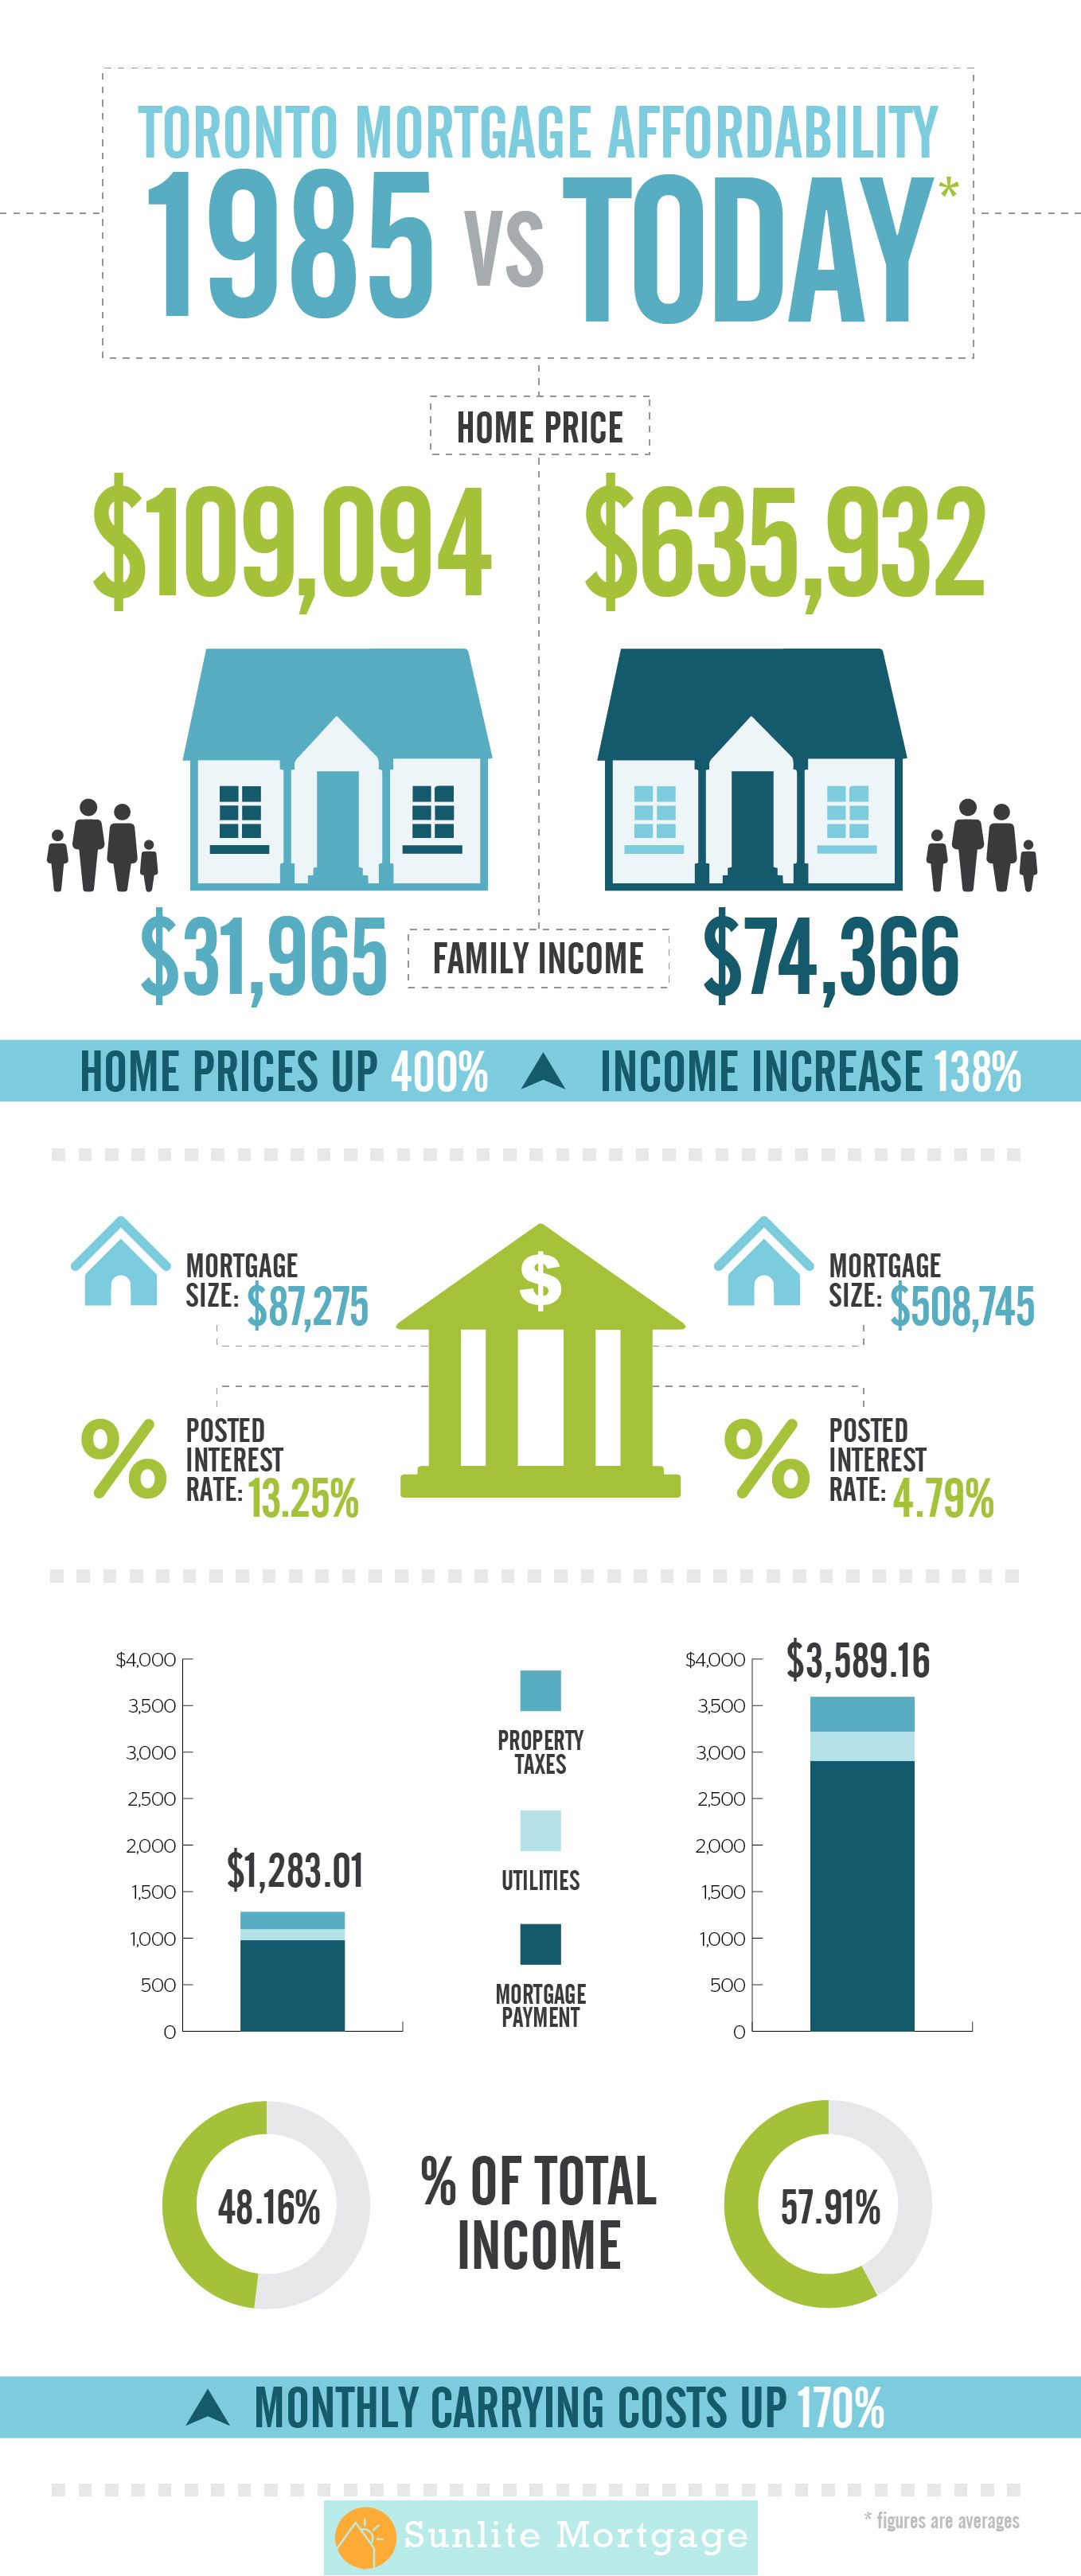 Compare The Mortgage Affordability For Toronto We Compare The Avarage Price Of The Home Price Inc Real Estate Infographic Mortgage Best Mortgage Rates Today